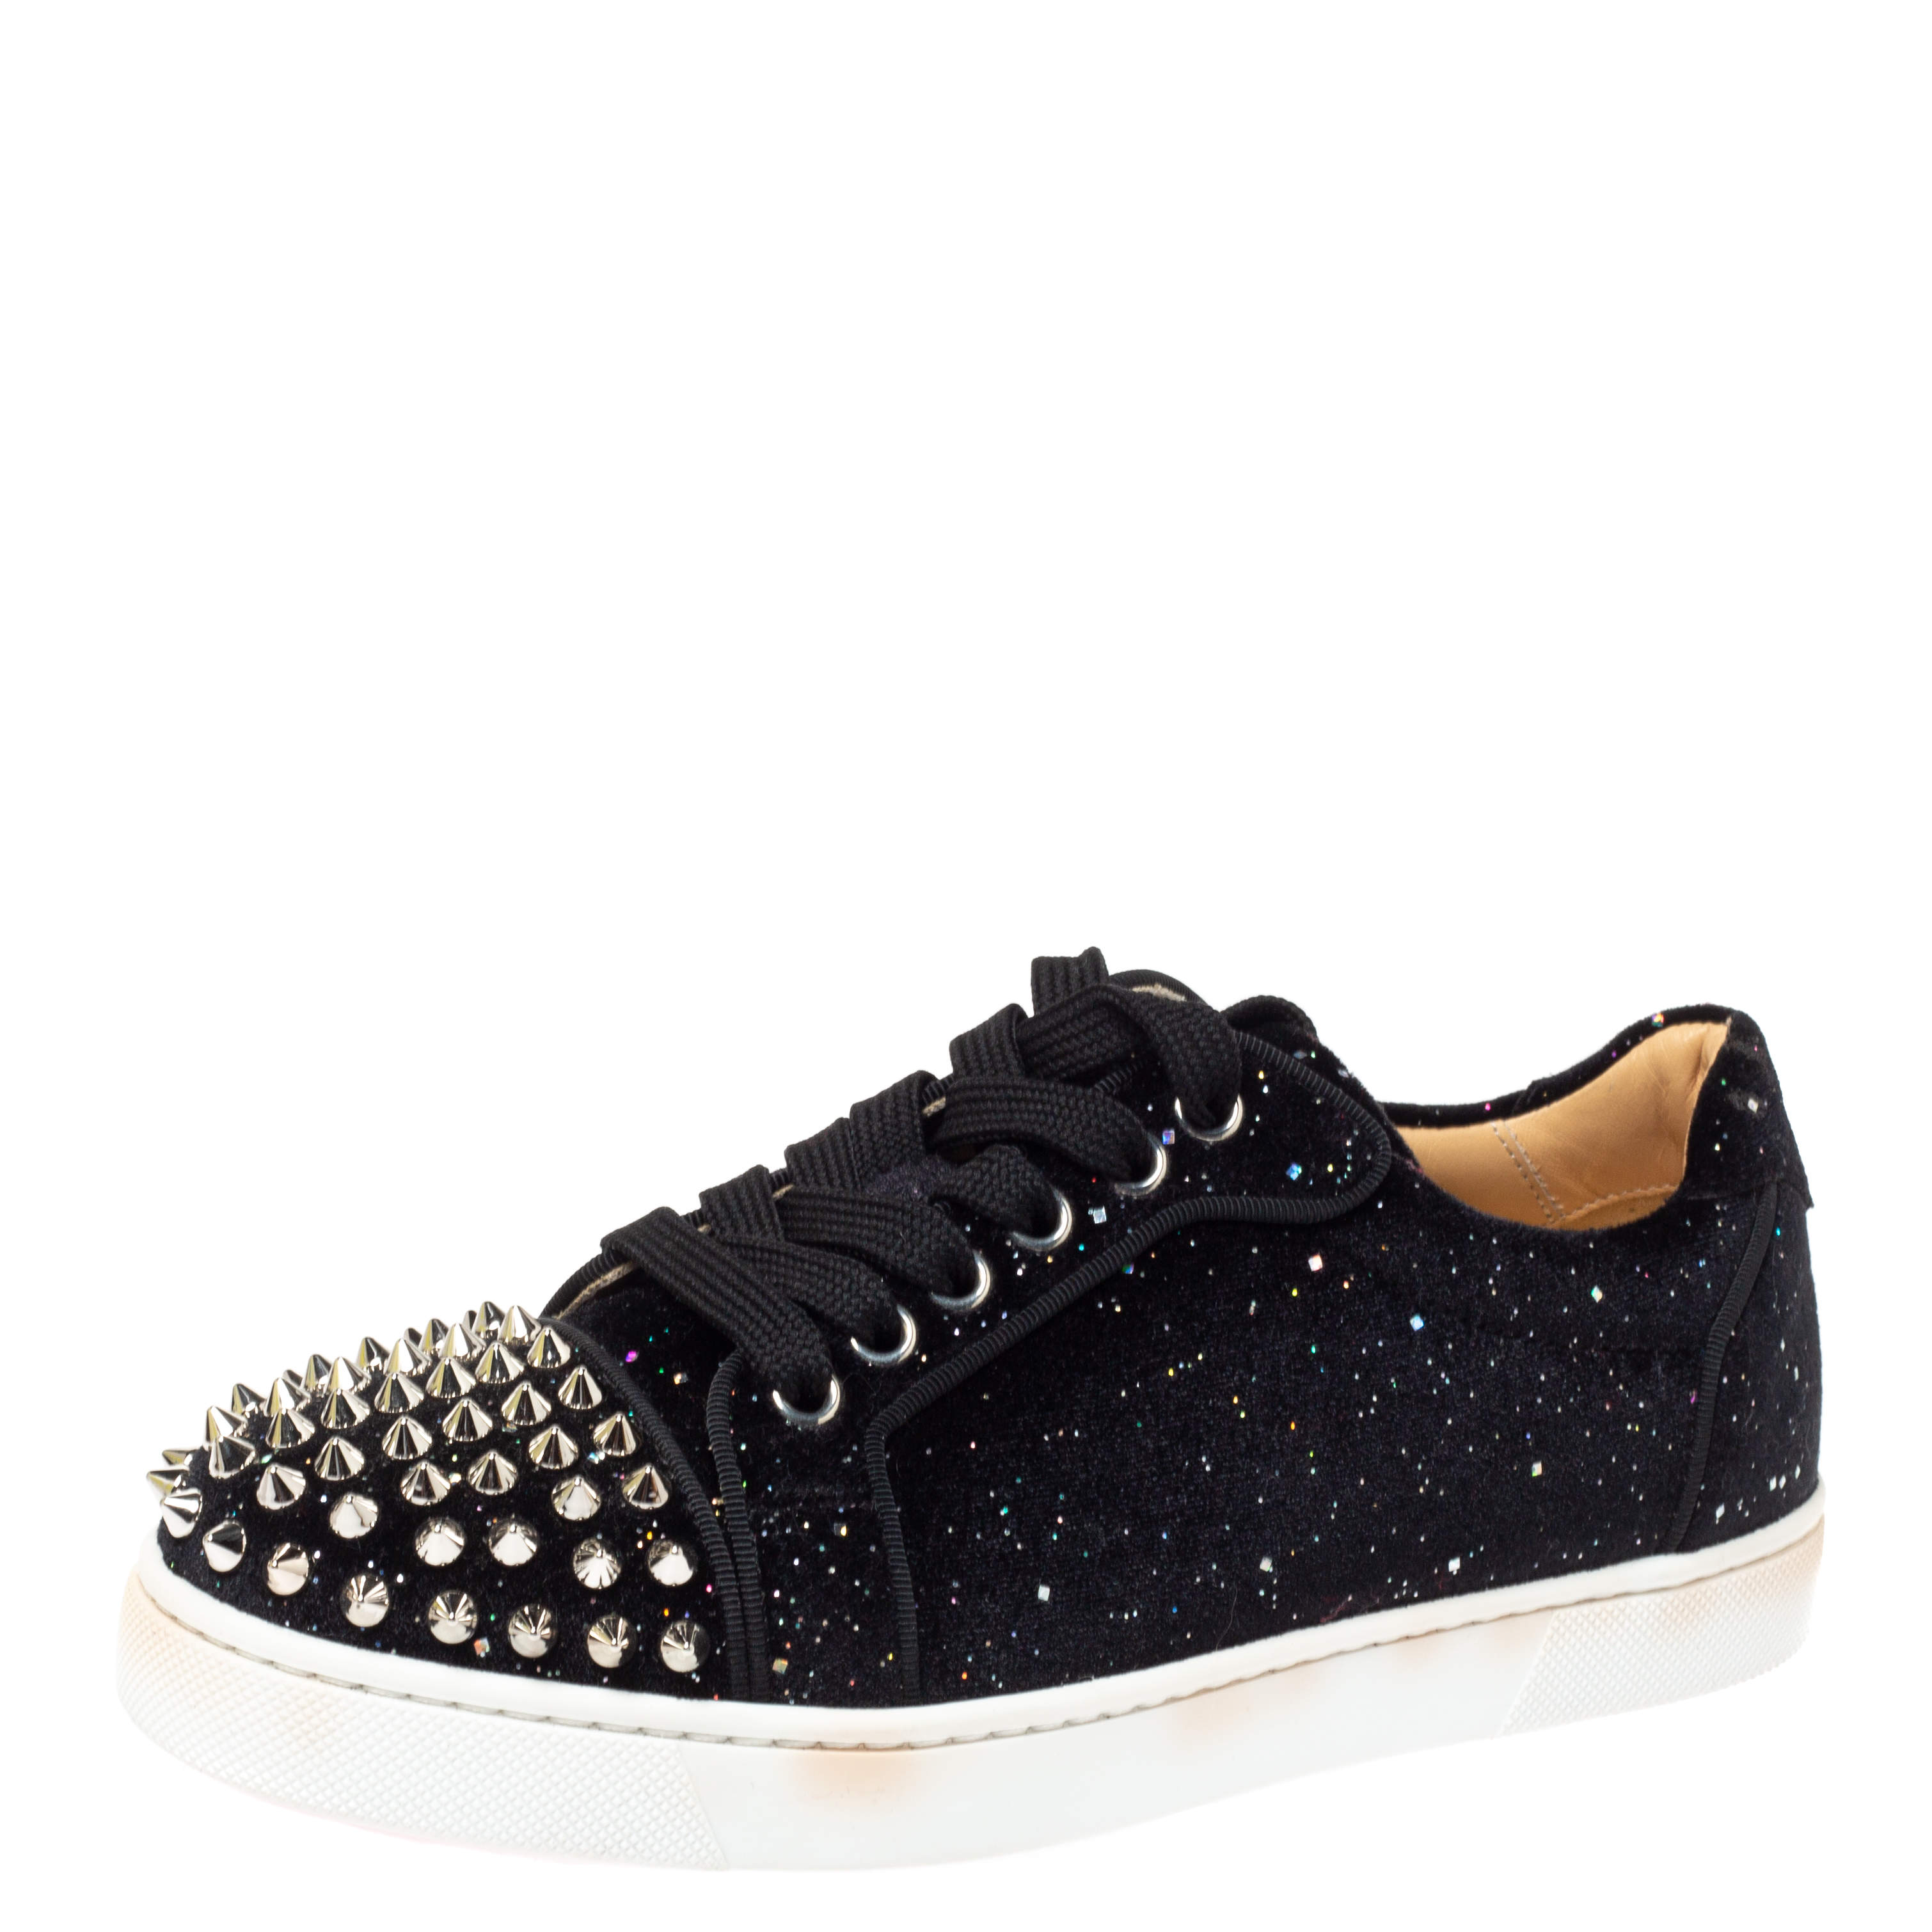 Christian Louboutin Black Glitter Suede Louis Junior Spikes Low Top Sneakers Size 35